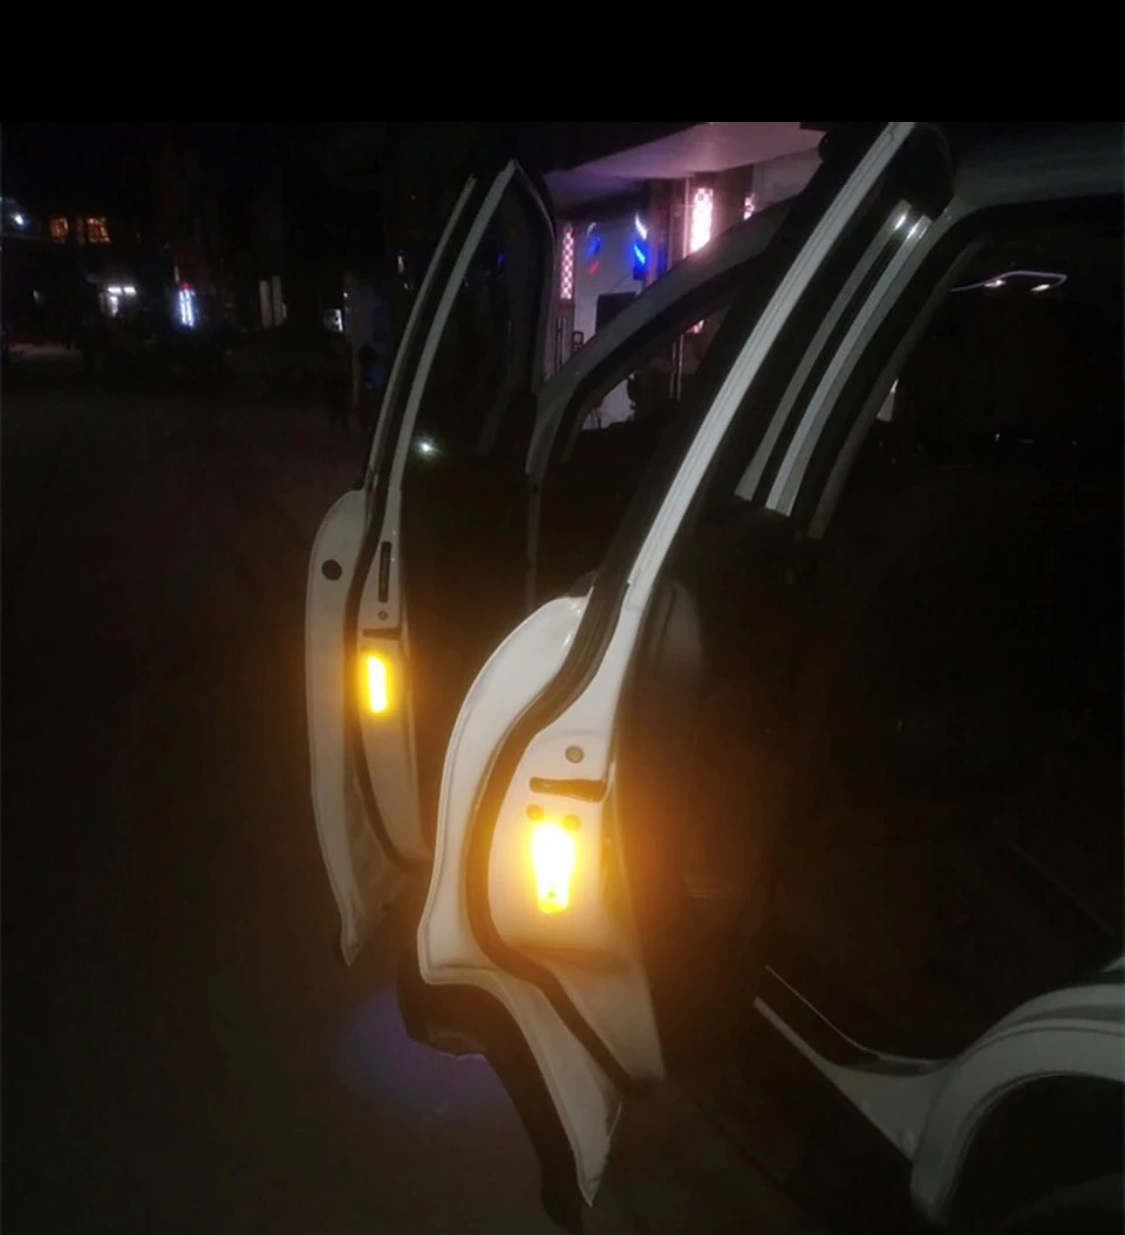 4PCS Super Car Door Open Sticker Reflective Tape Safety Warning Car Styling Reflective Open Sticker Door Open Warning Safety Sticker Auto Decor Yellow Night Lighting Luminous Tape